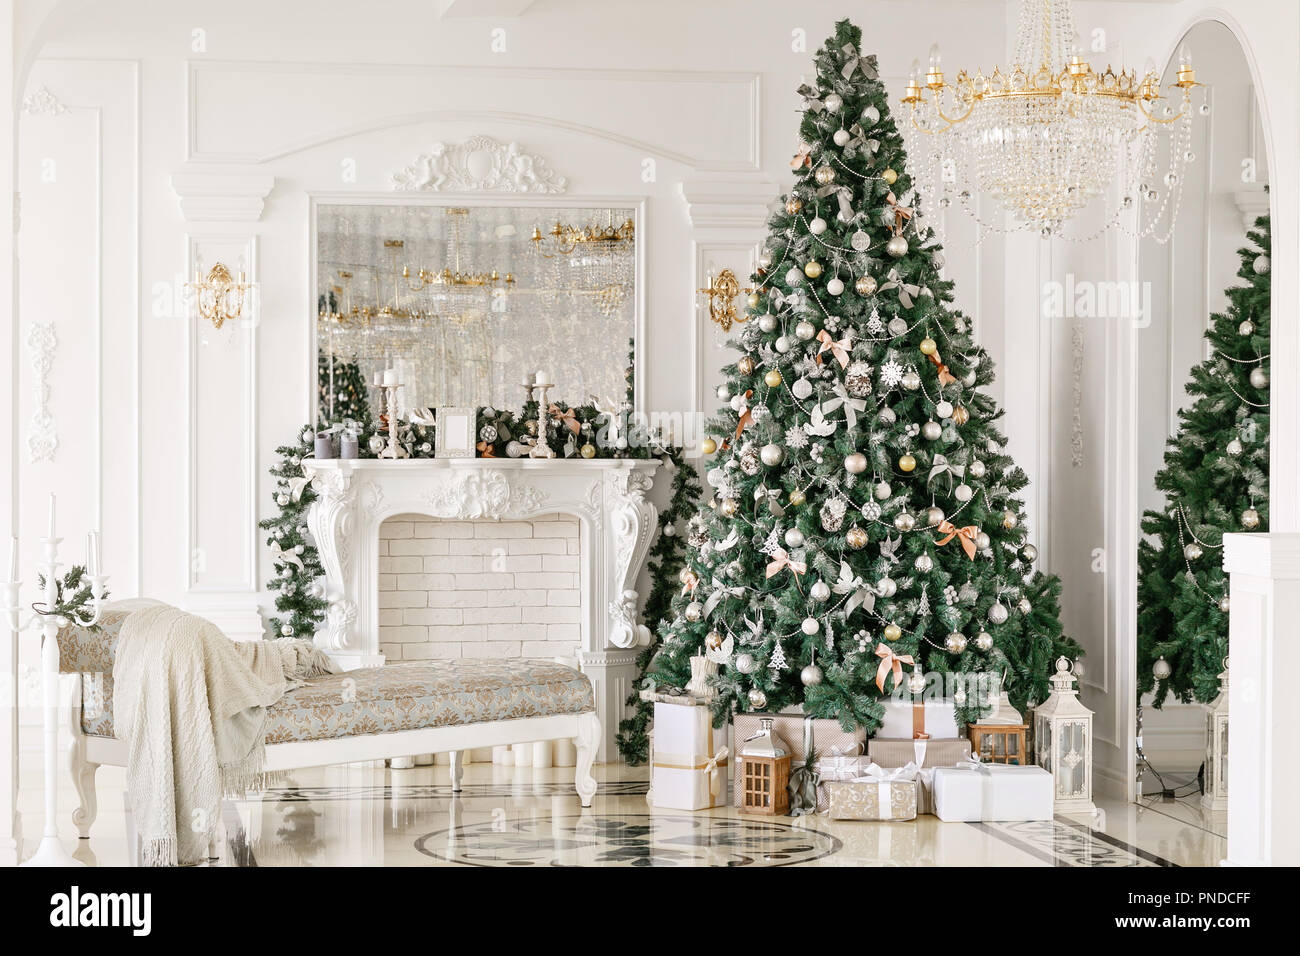 Gifts At The Christmas Tree Christmas Morning Classic Luxurious